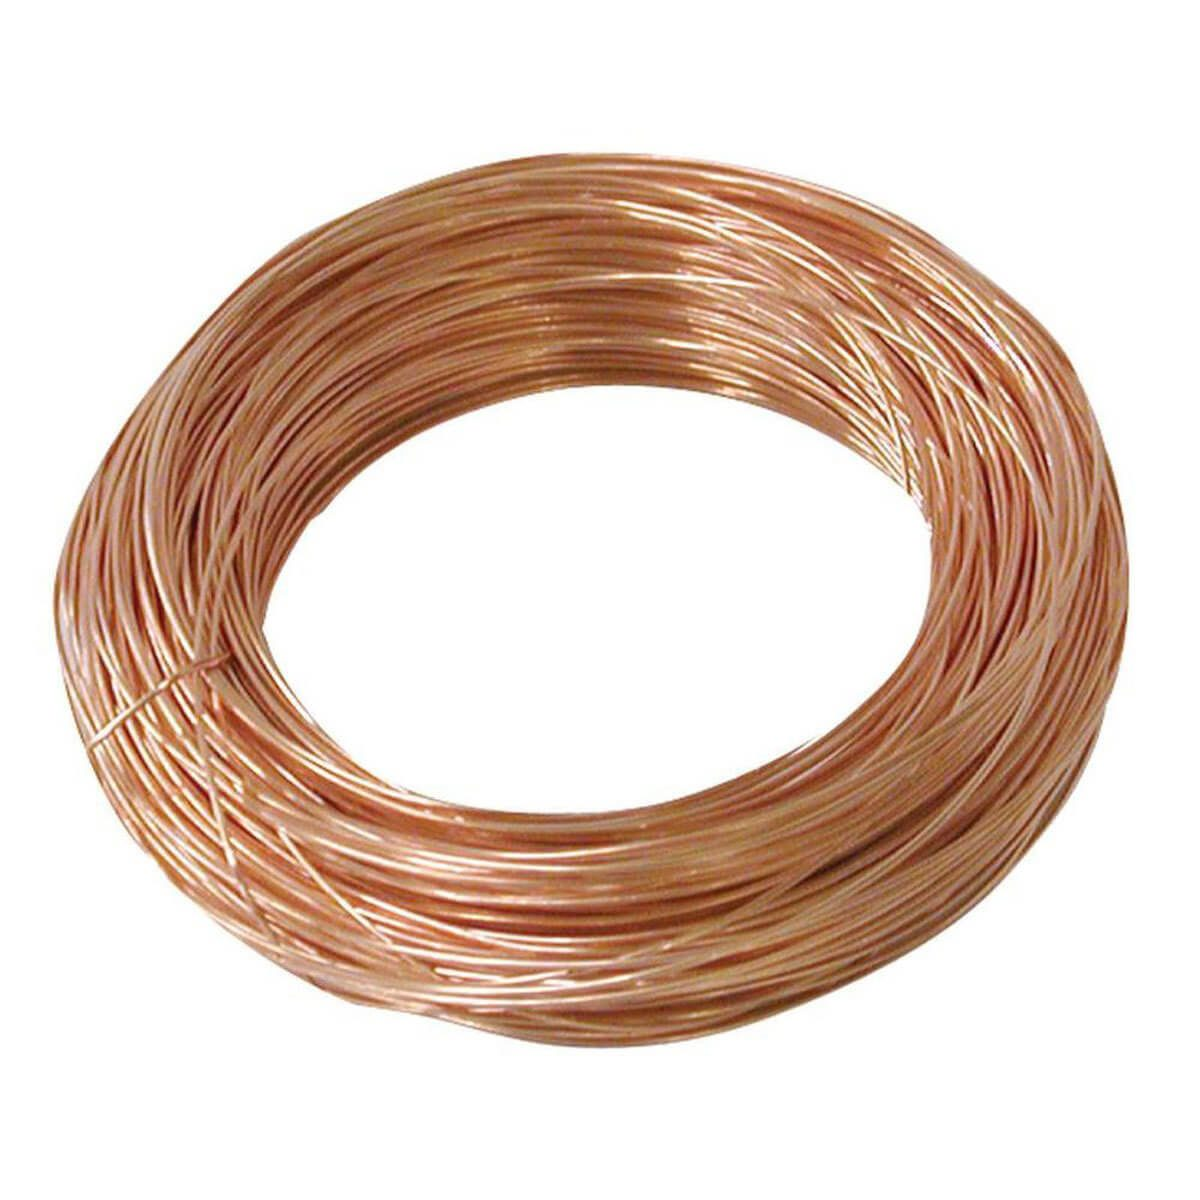 11 Things You Can Make with Copper Wire — The Family Handyman on